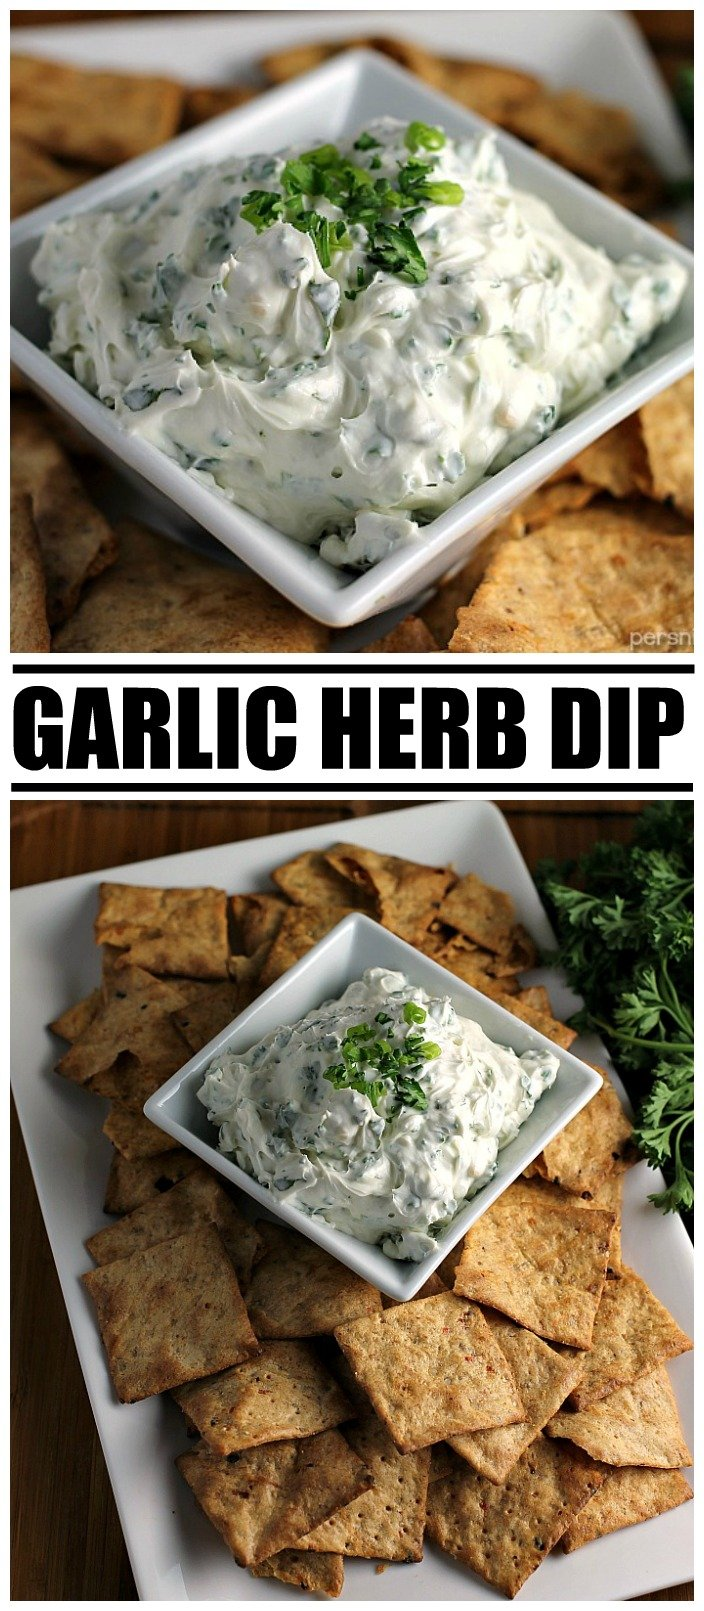 Garlic Herb Dip starts with a cream cheese base then is filled with fresh herbs. Pair this super easy dip recipe with crackers, chips, or veggies to make the perfect quick snack for your next party or game day. | www.persnicketyplates.com #dip #appetizer #easyrecipe #partyfood #garlic